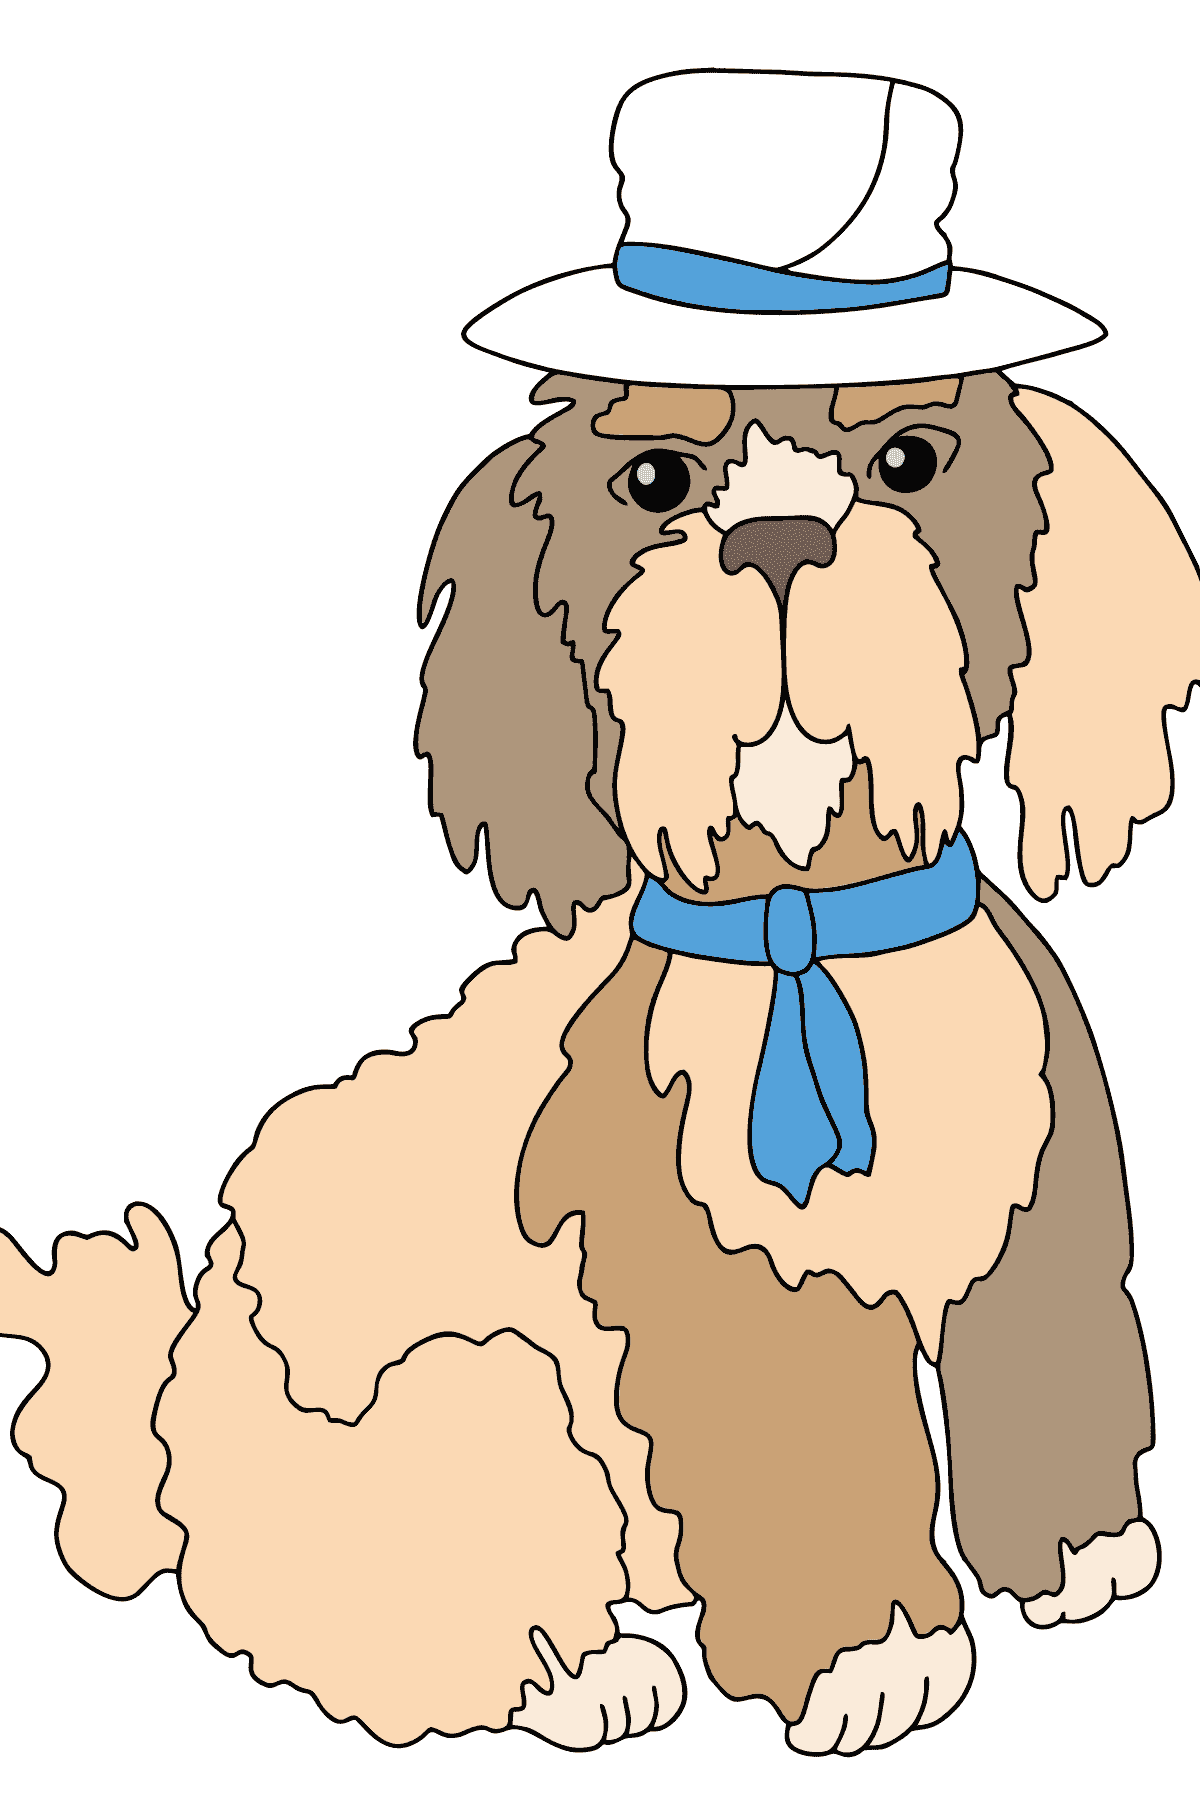 Coloring Page - A Dog in a Beautiful Hat for Children